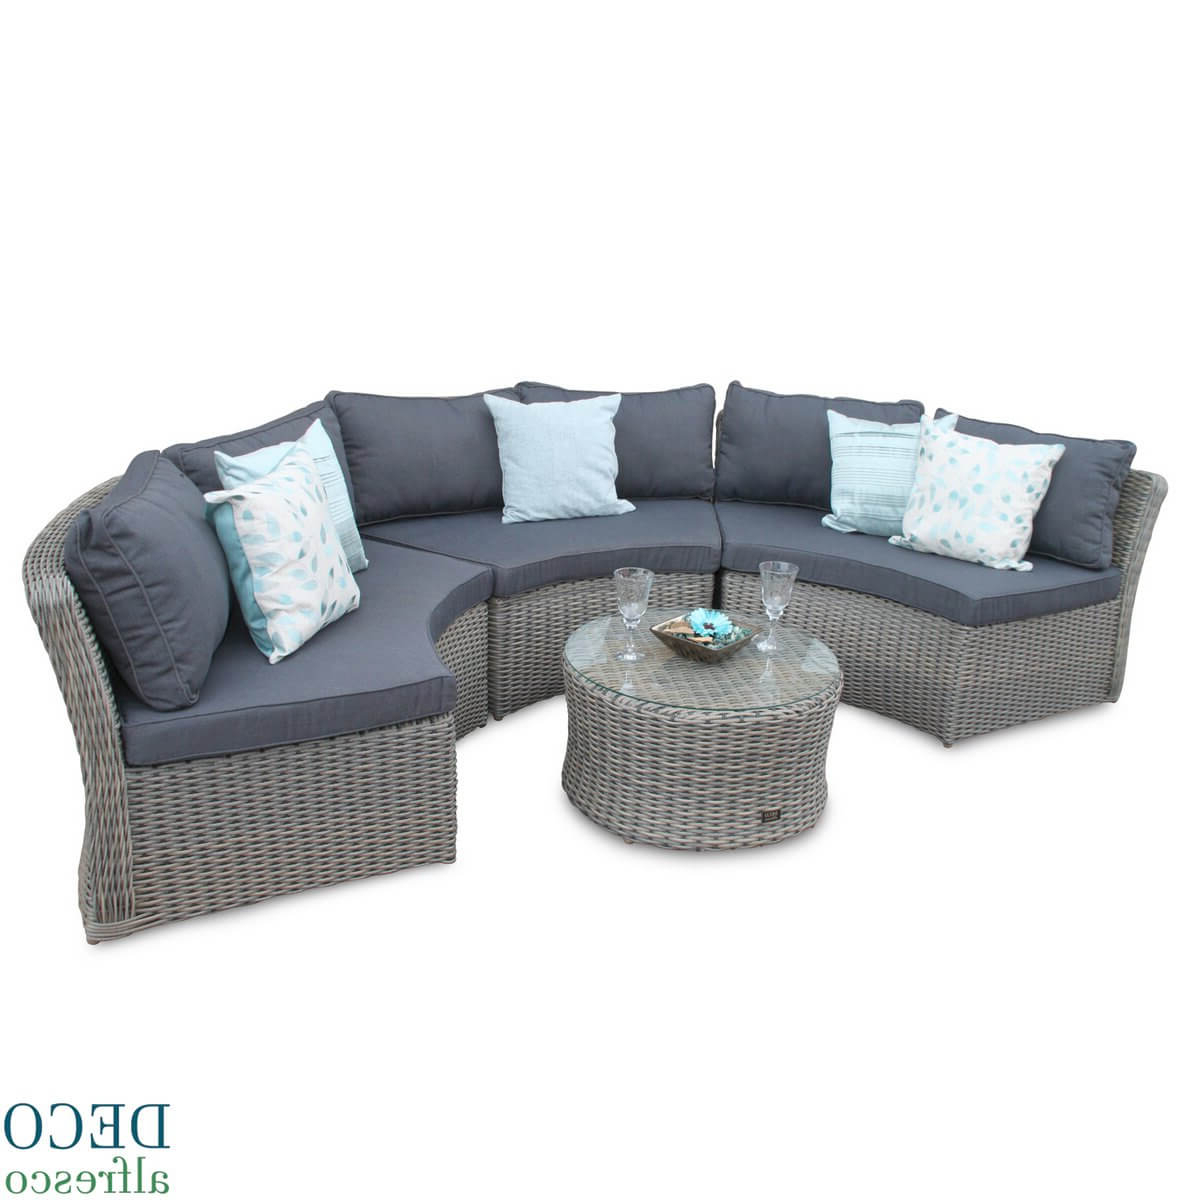 Half Moon Round Rattan Outdoor Furniture Sofa Natural Deco Alfresco Pertaining To Natural Cane Media Console Tables (View 10 of 20)